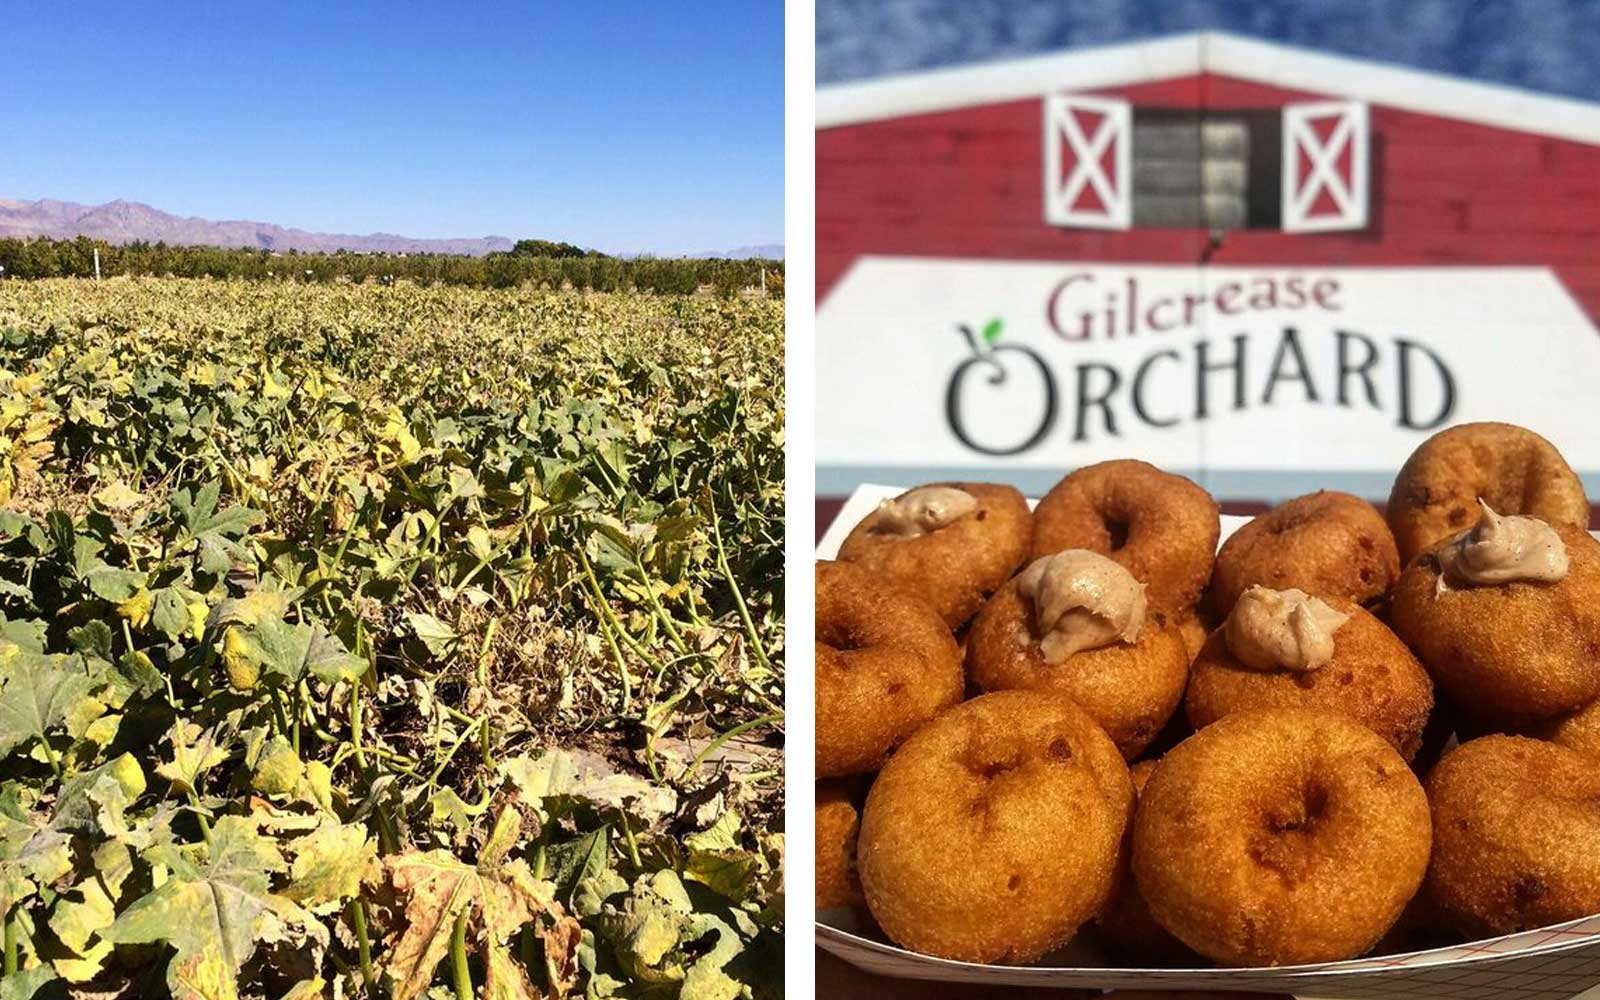 4. Gilcrease Orchard